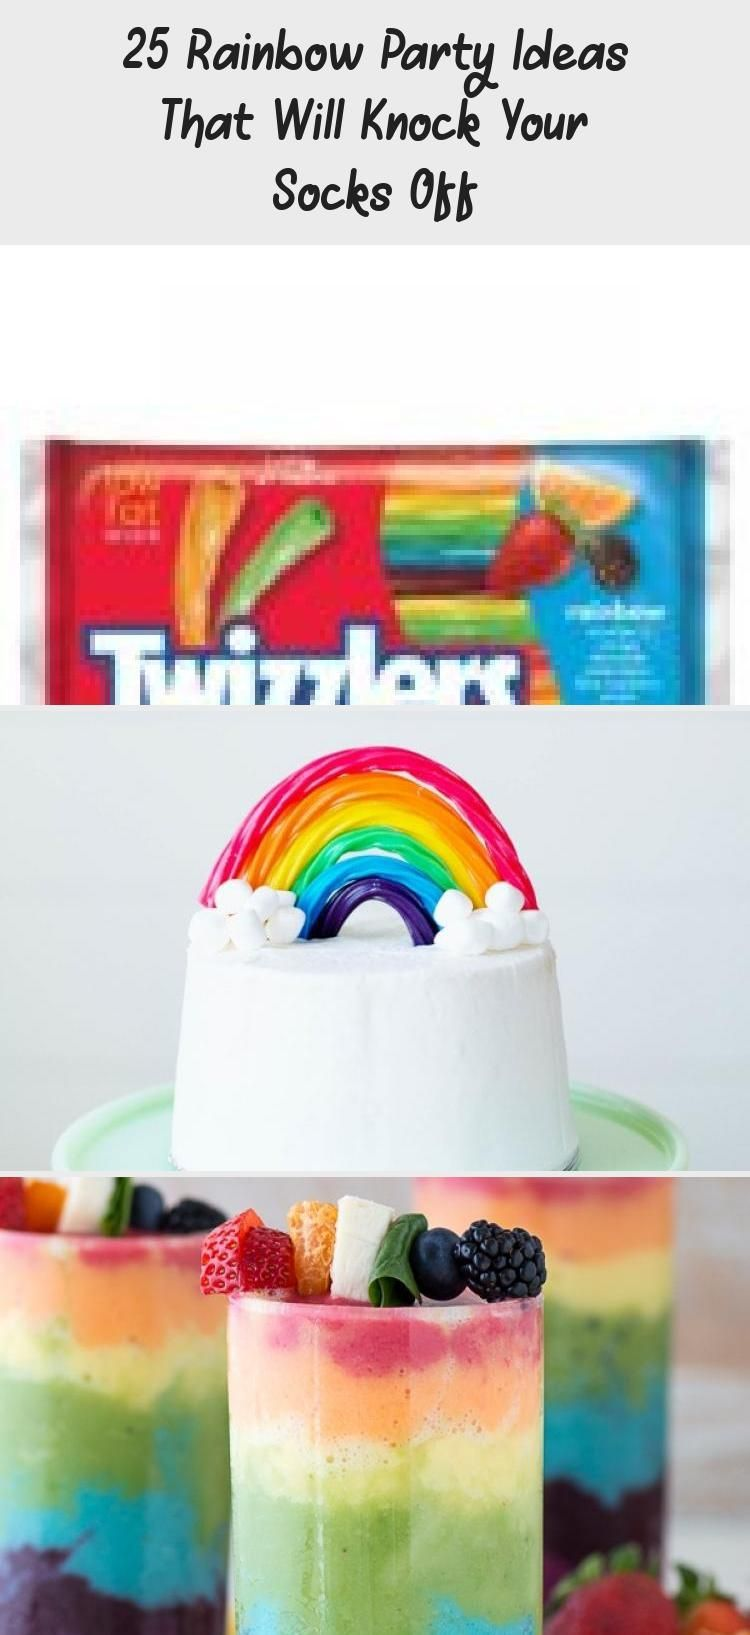 25 Rainbow Party Ideas That Will Knock Your Socks Off